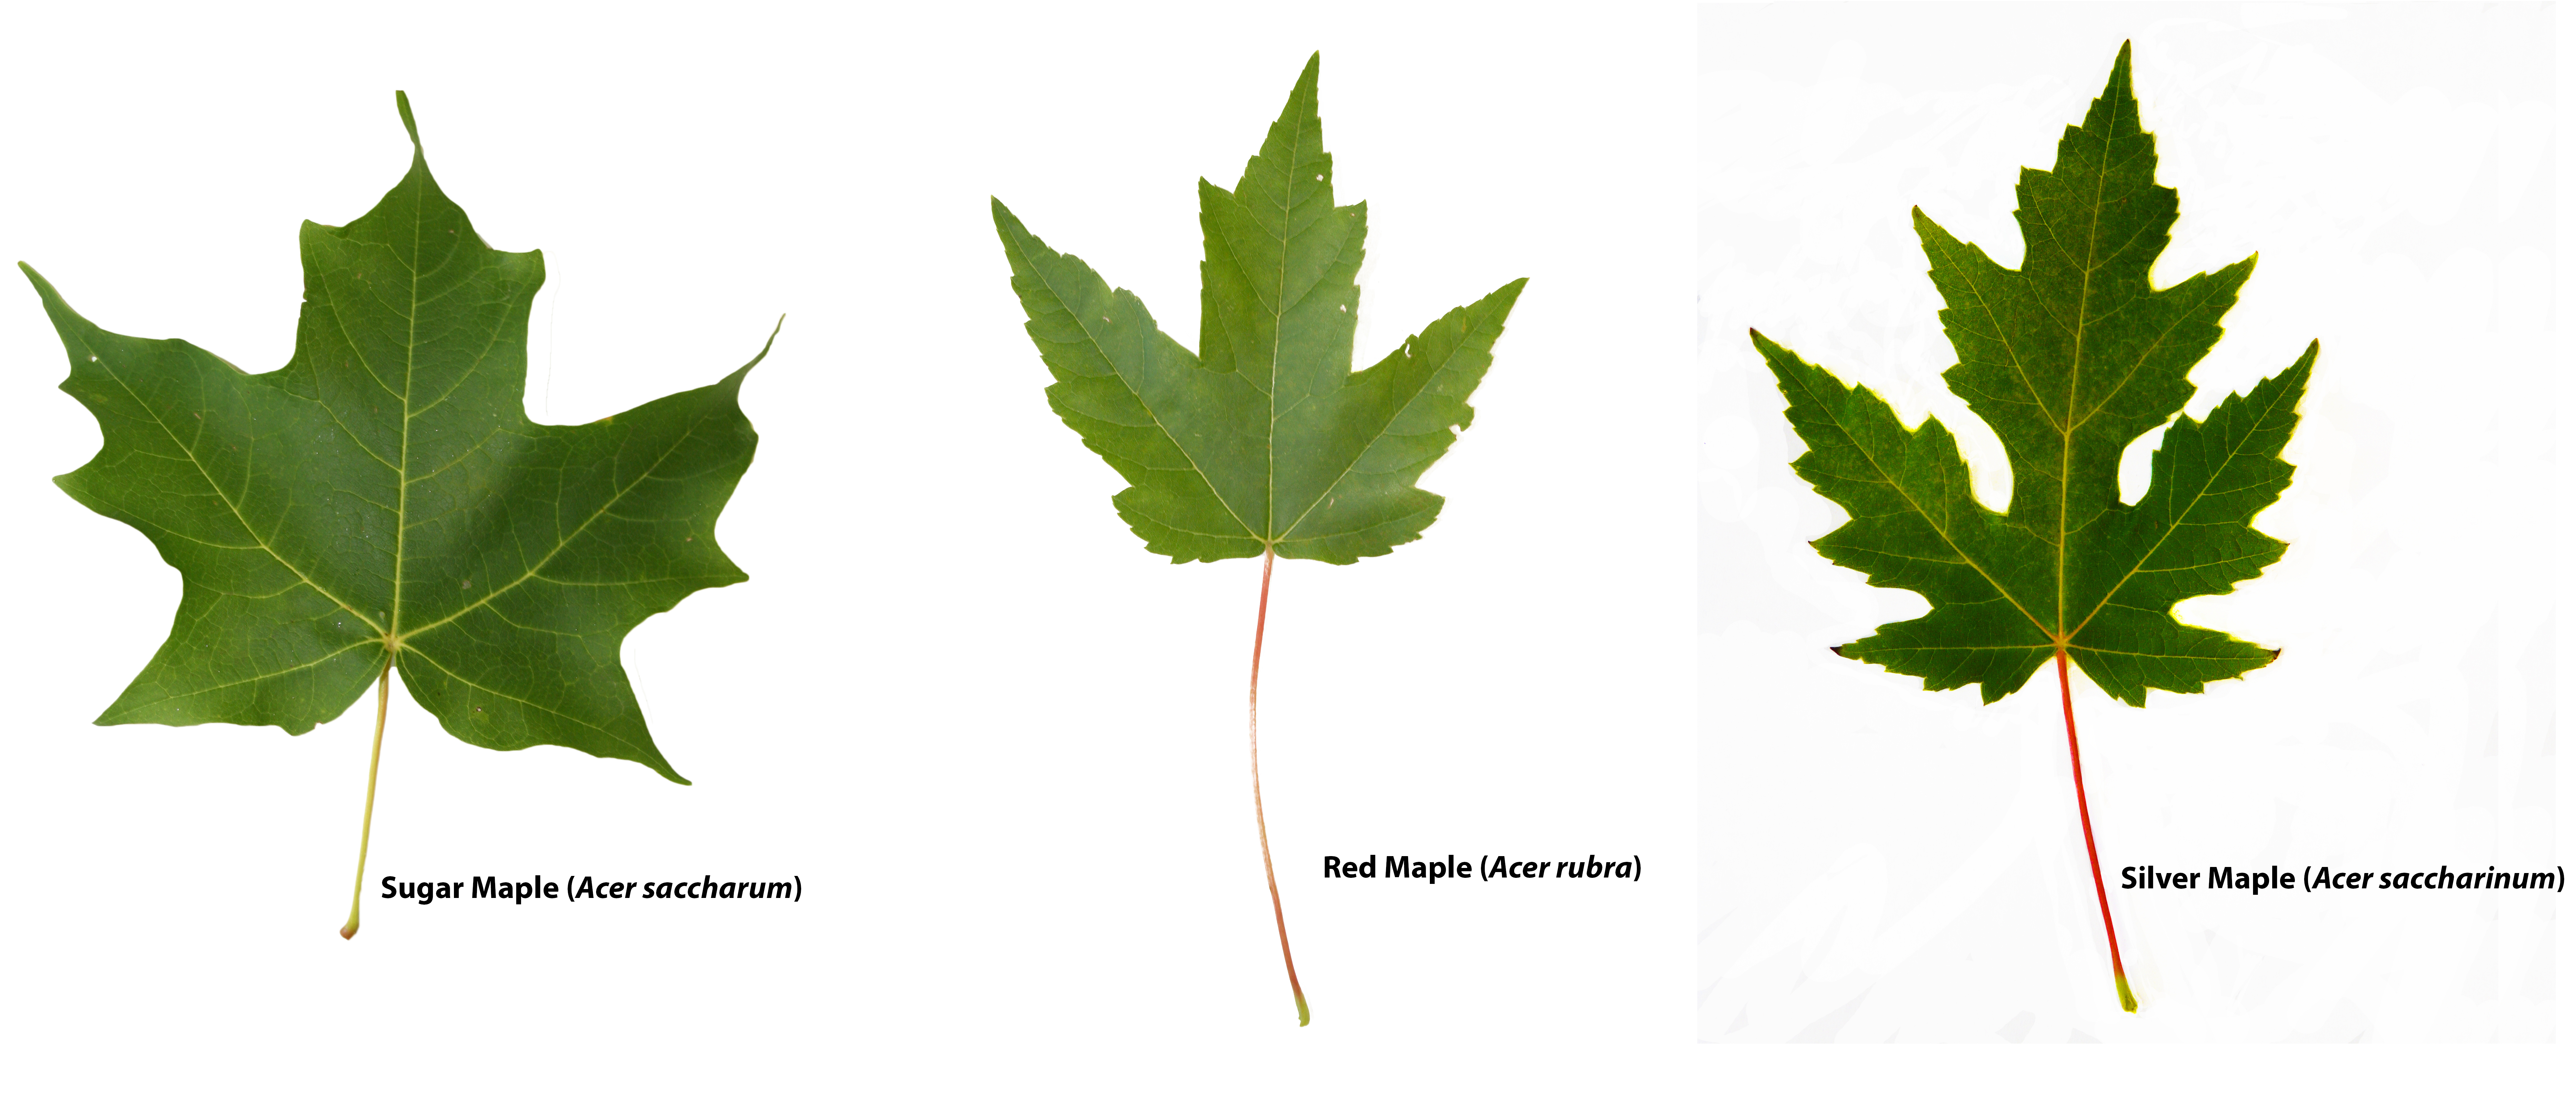 Comparison of different maple trees by leaves